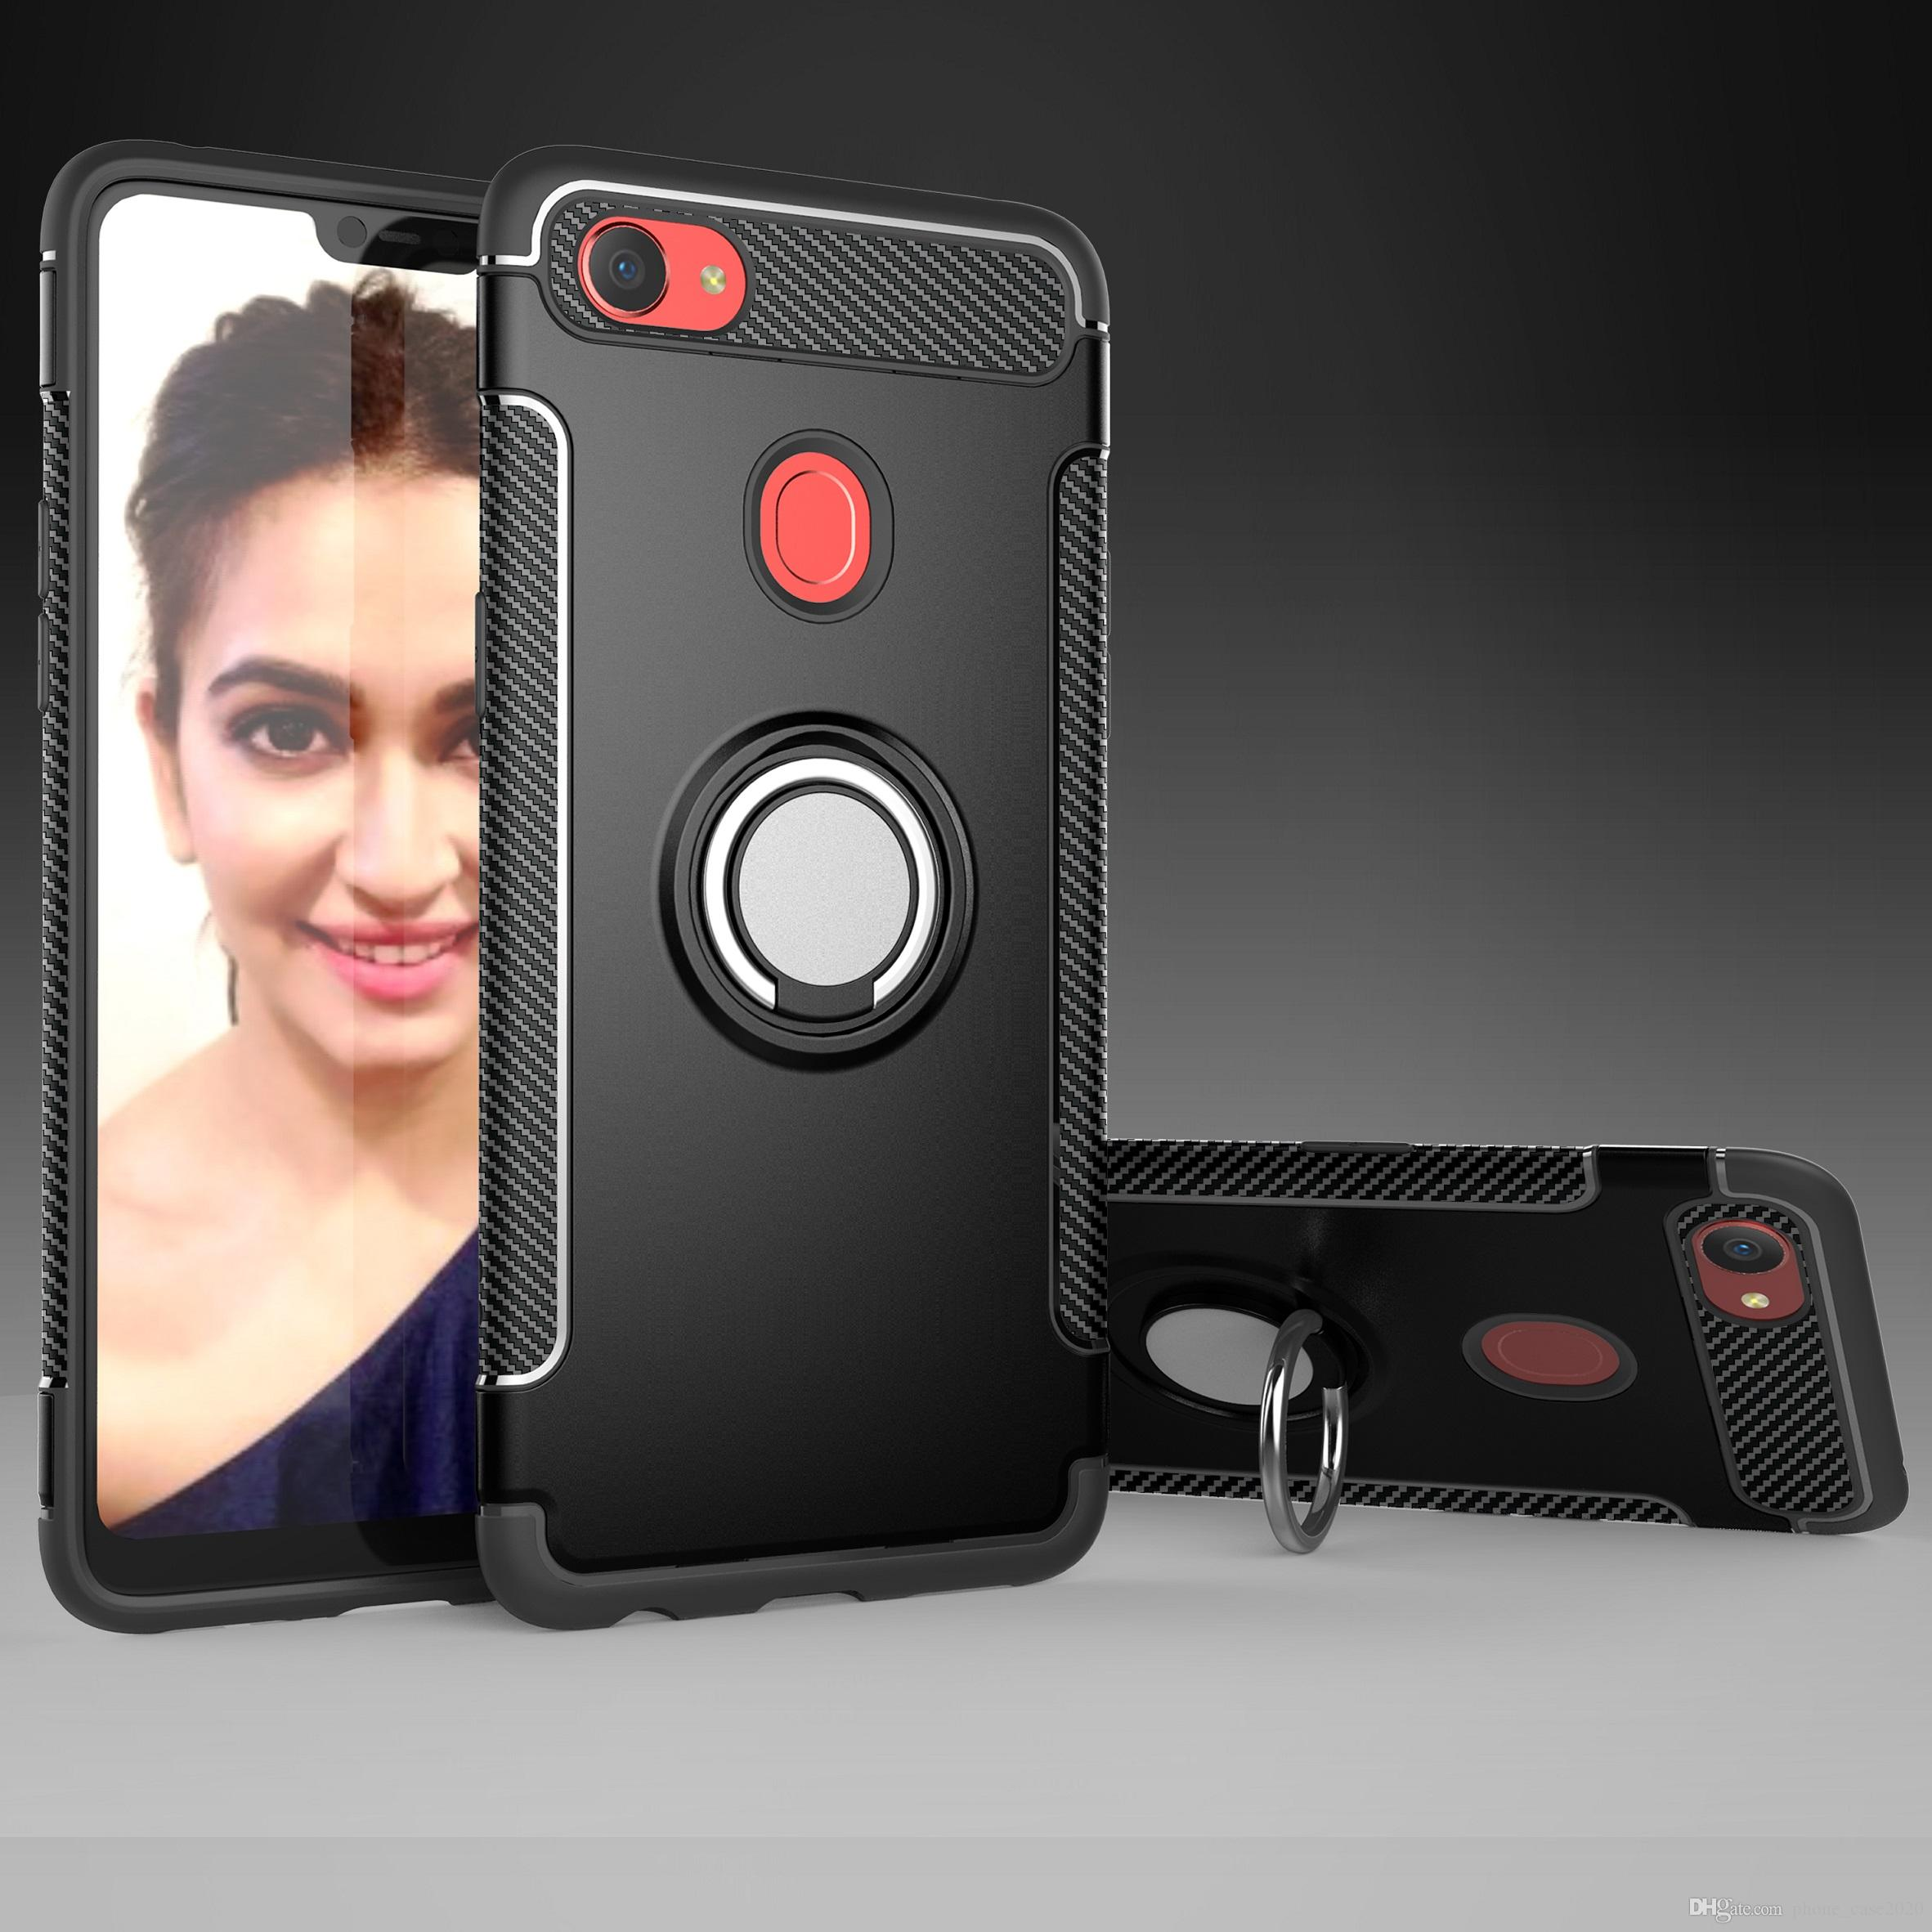 Slim 2in1 Hybrid Finger Ring Kickstand Case For Oppo F7 A83 A73 F5 A79 R15 R11s Plus R11 Plus Ballistic Cell Phone Case Bedazzled Phone Cases From